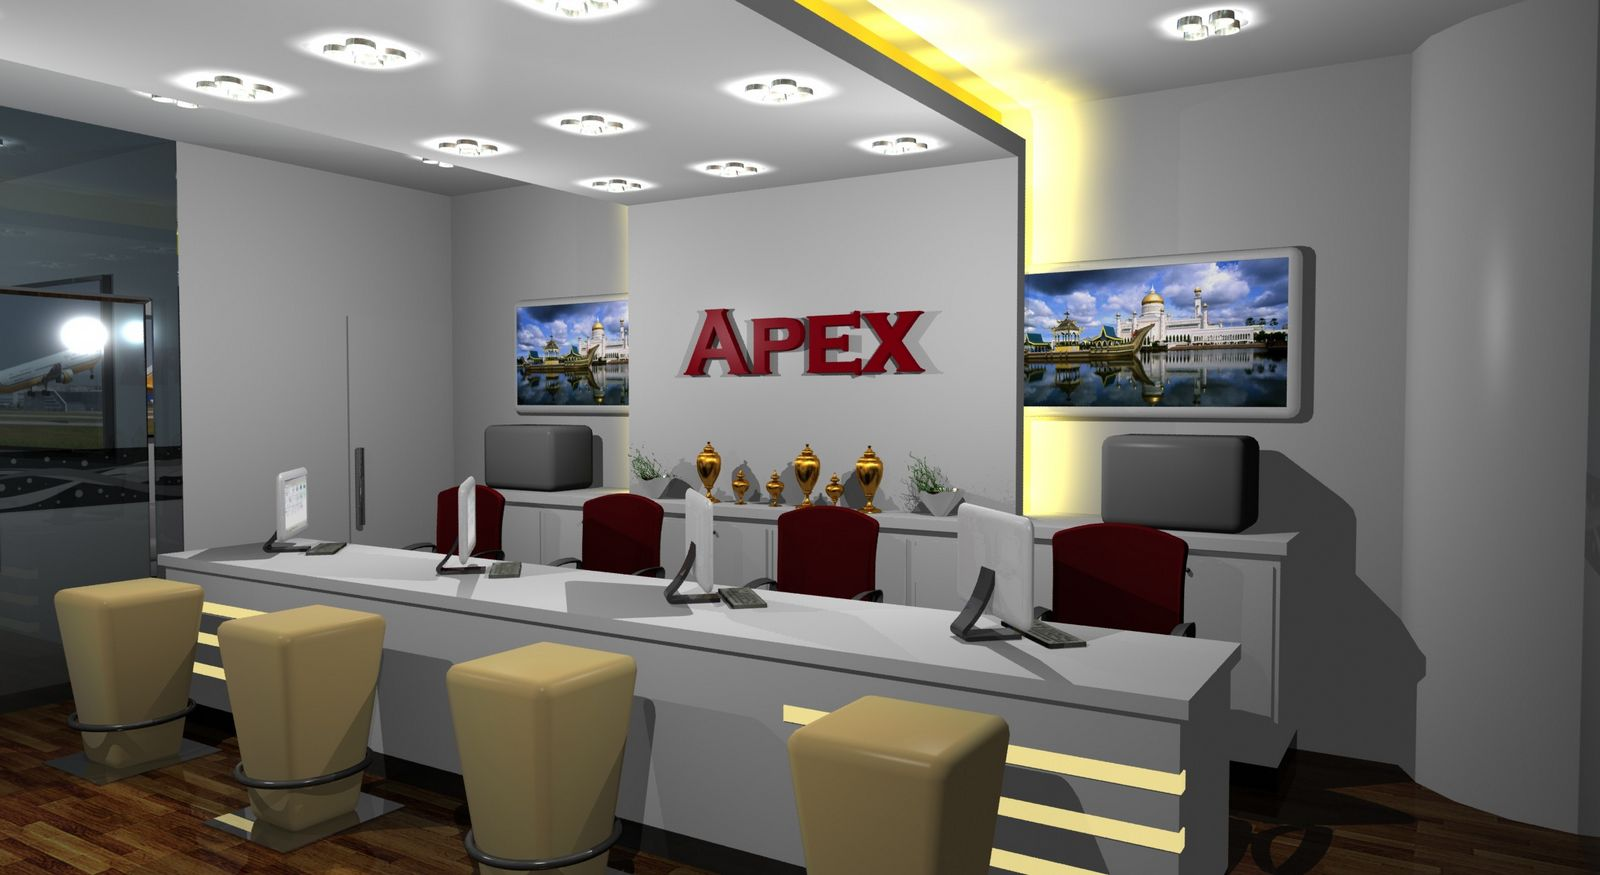 Travel agency office design ideas for Travel agency office interior design ideas